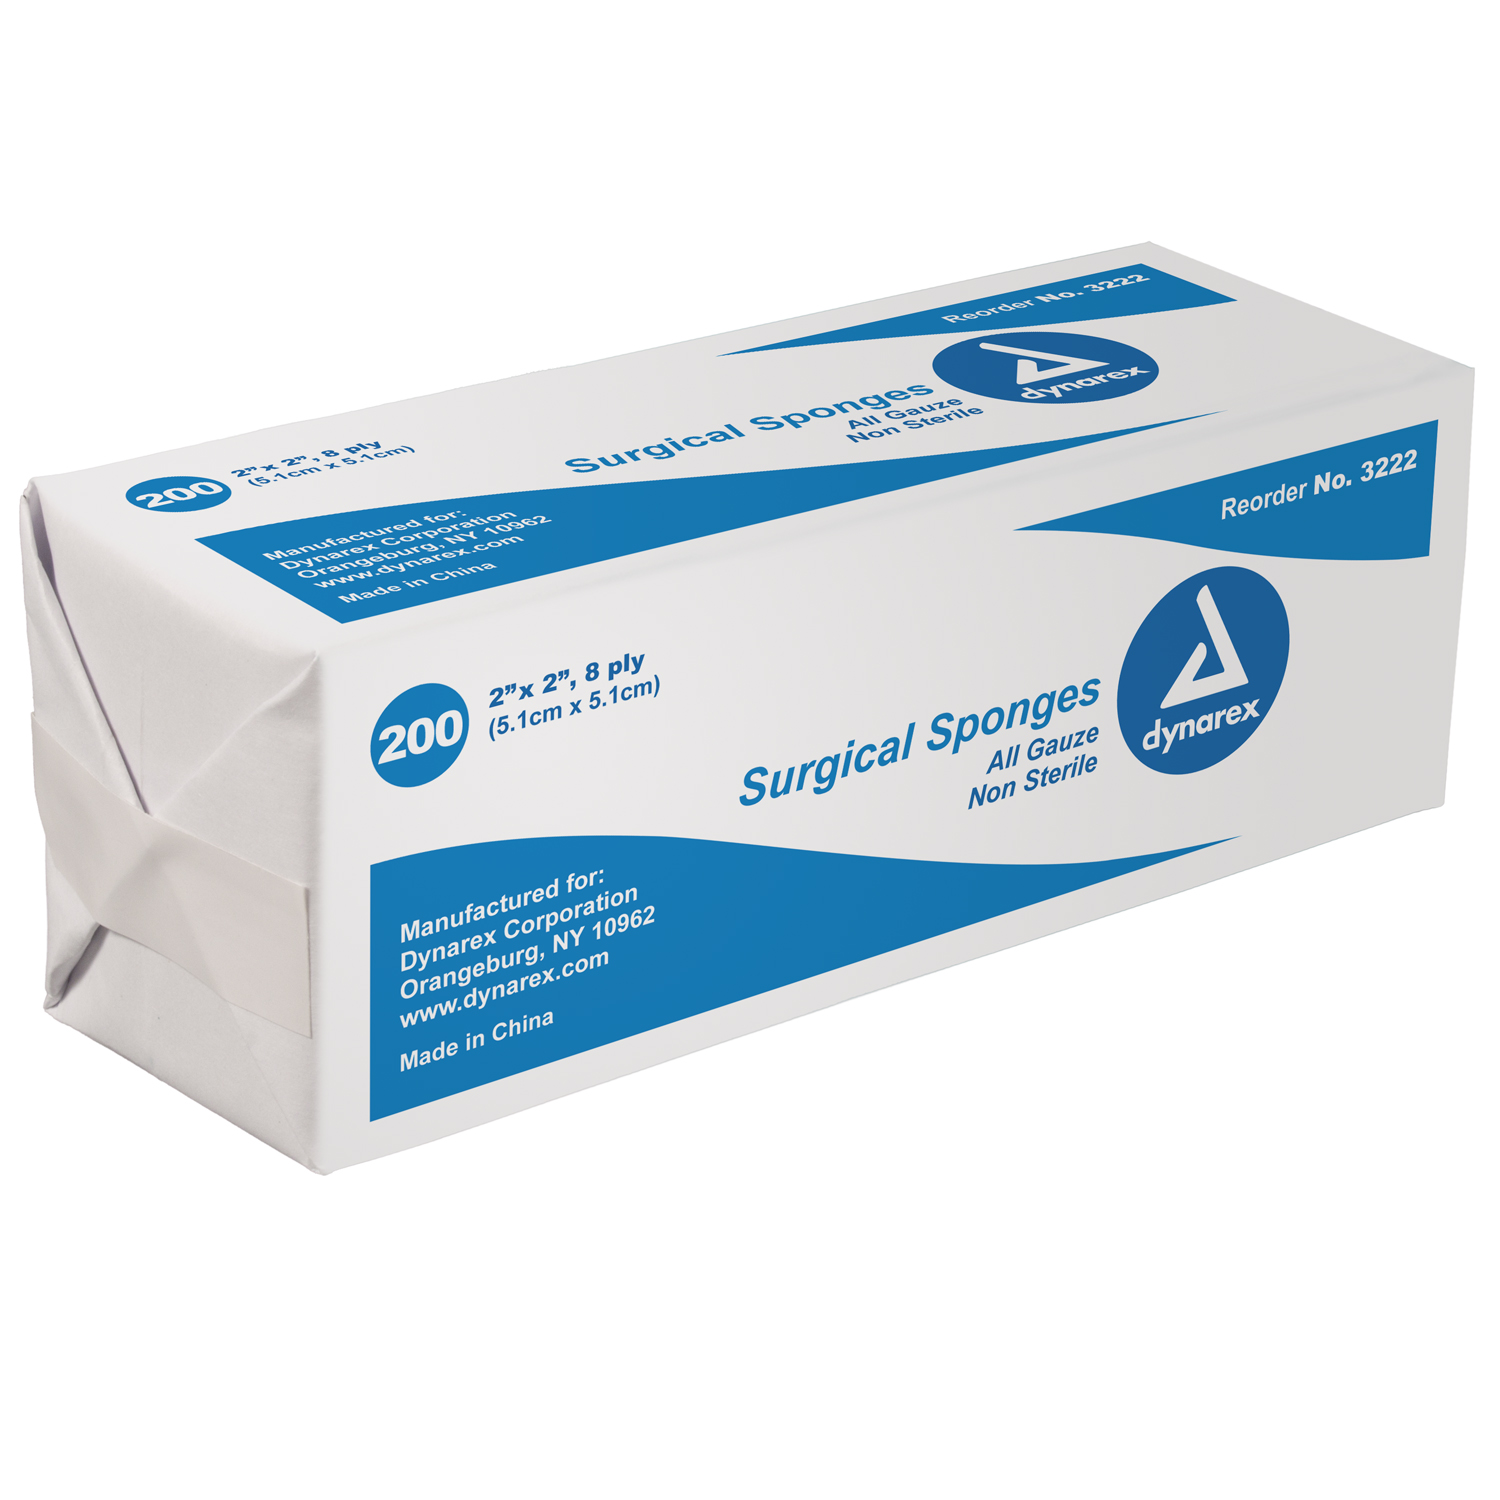 2x2 Non Sterile Gauze: Bag of 200 image